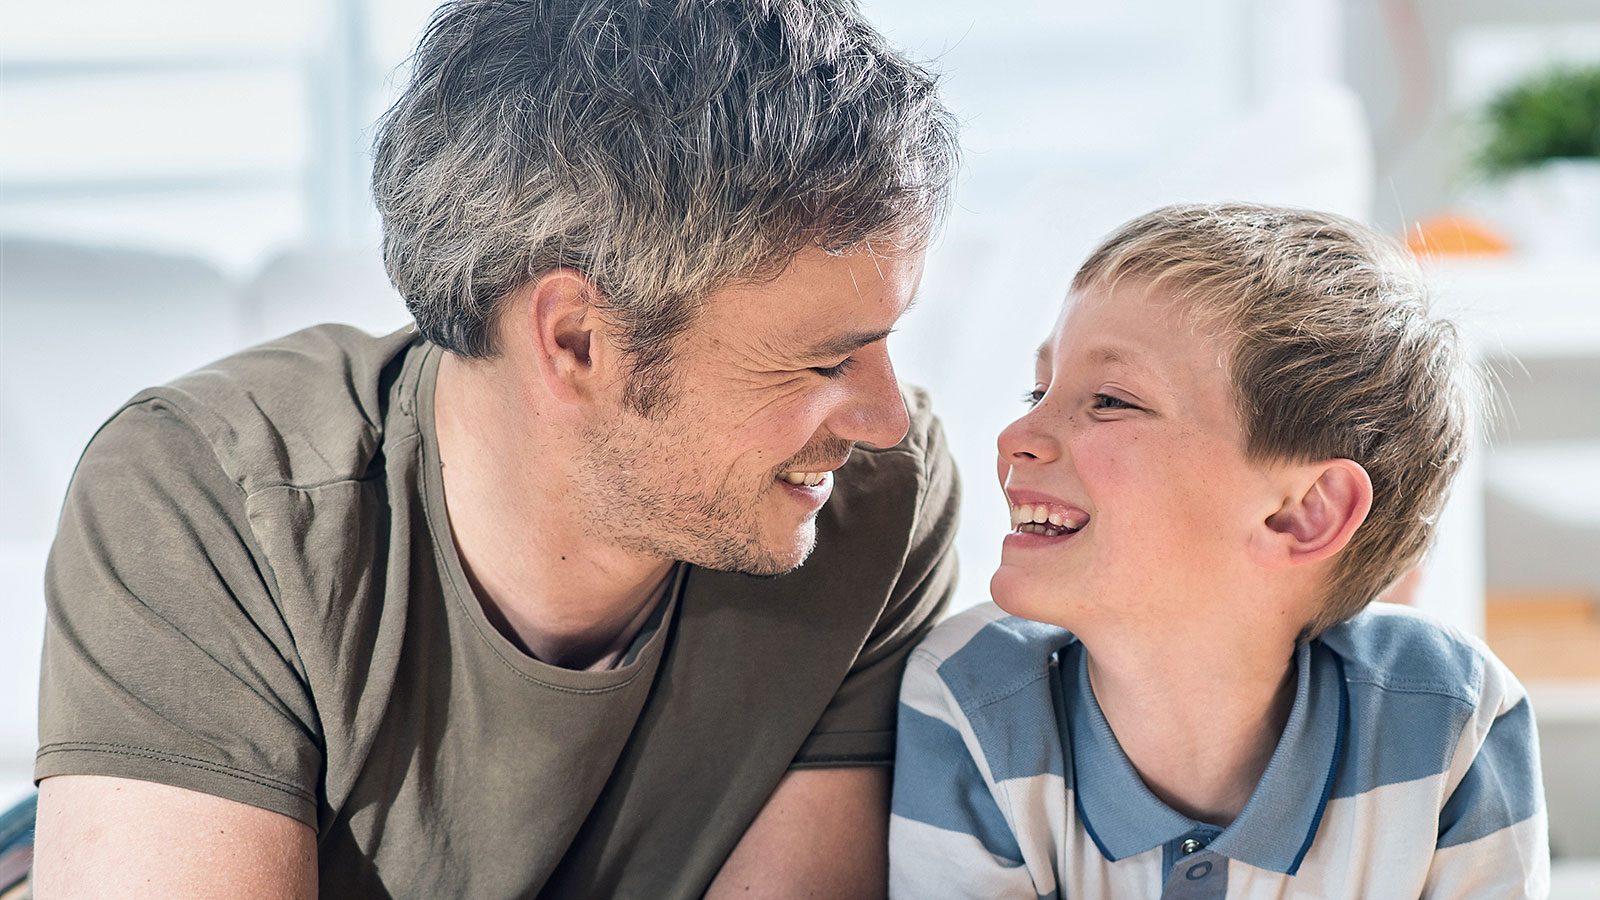 Professional coaching made me a better father. Here's how